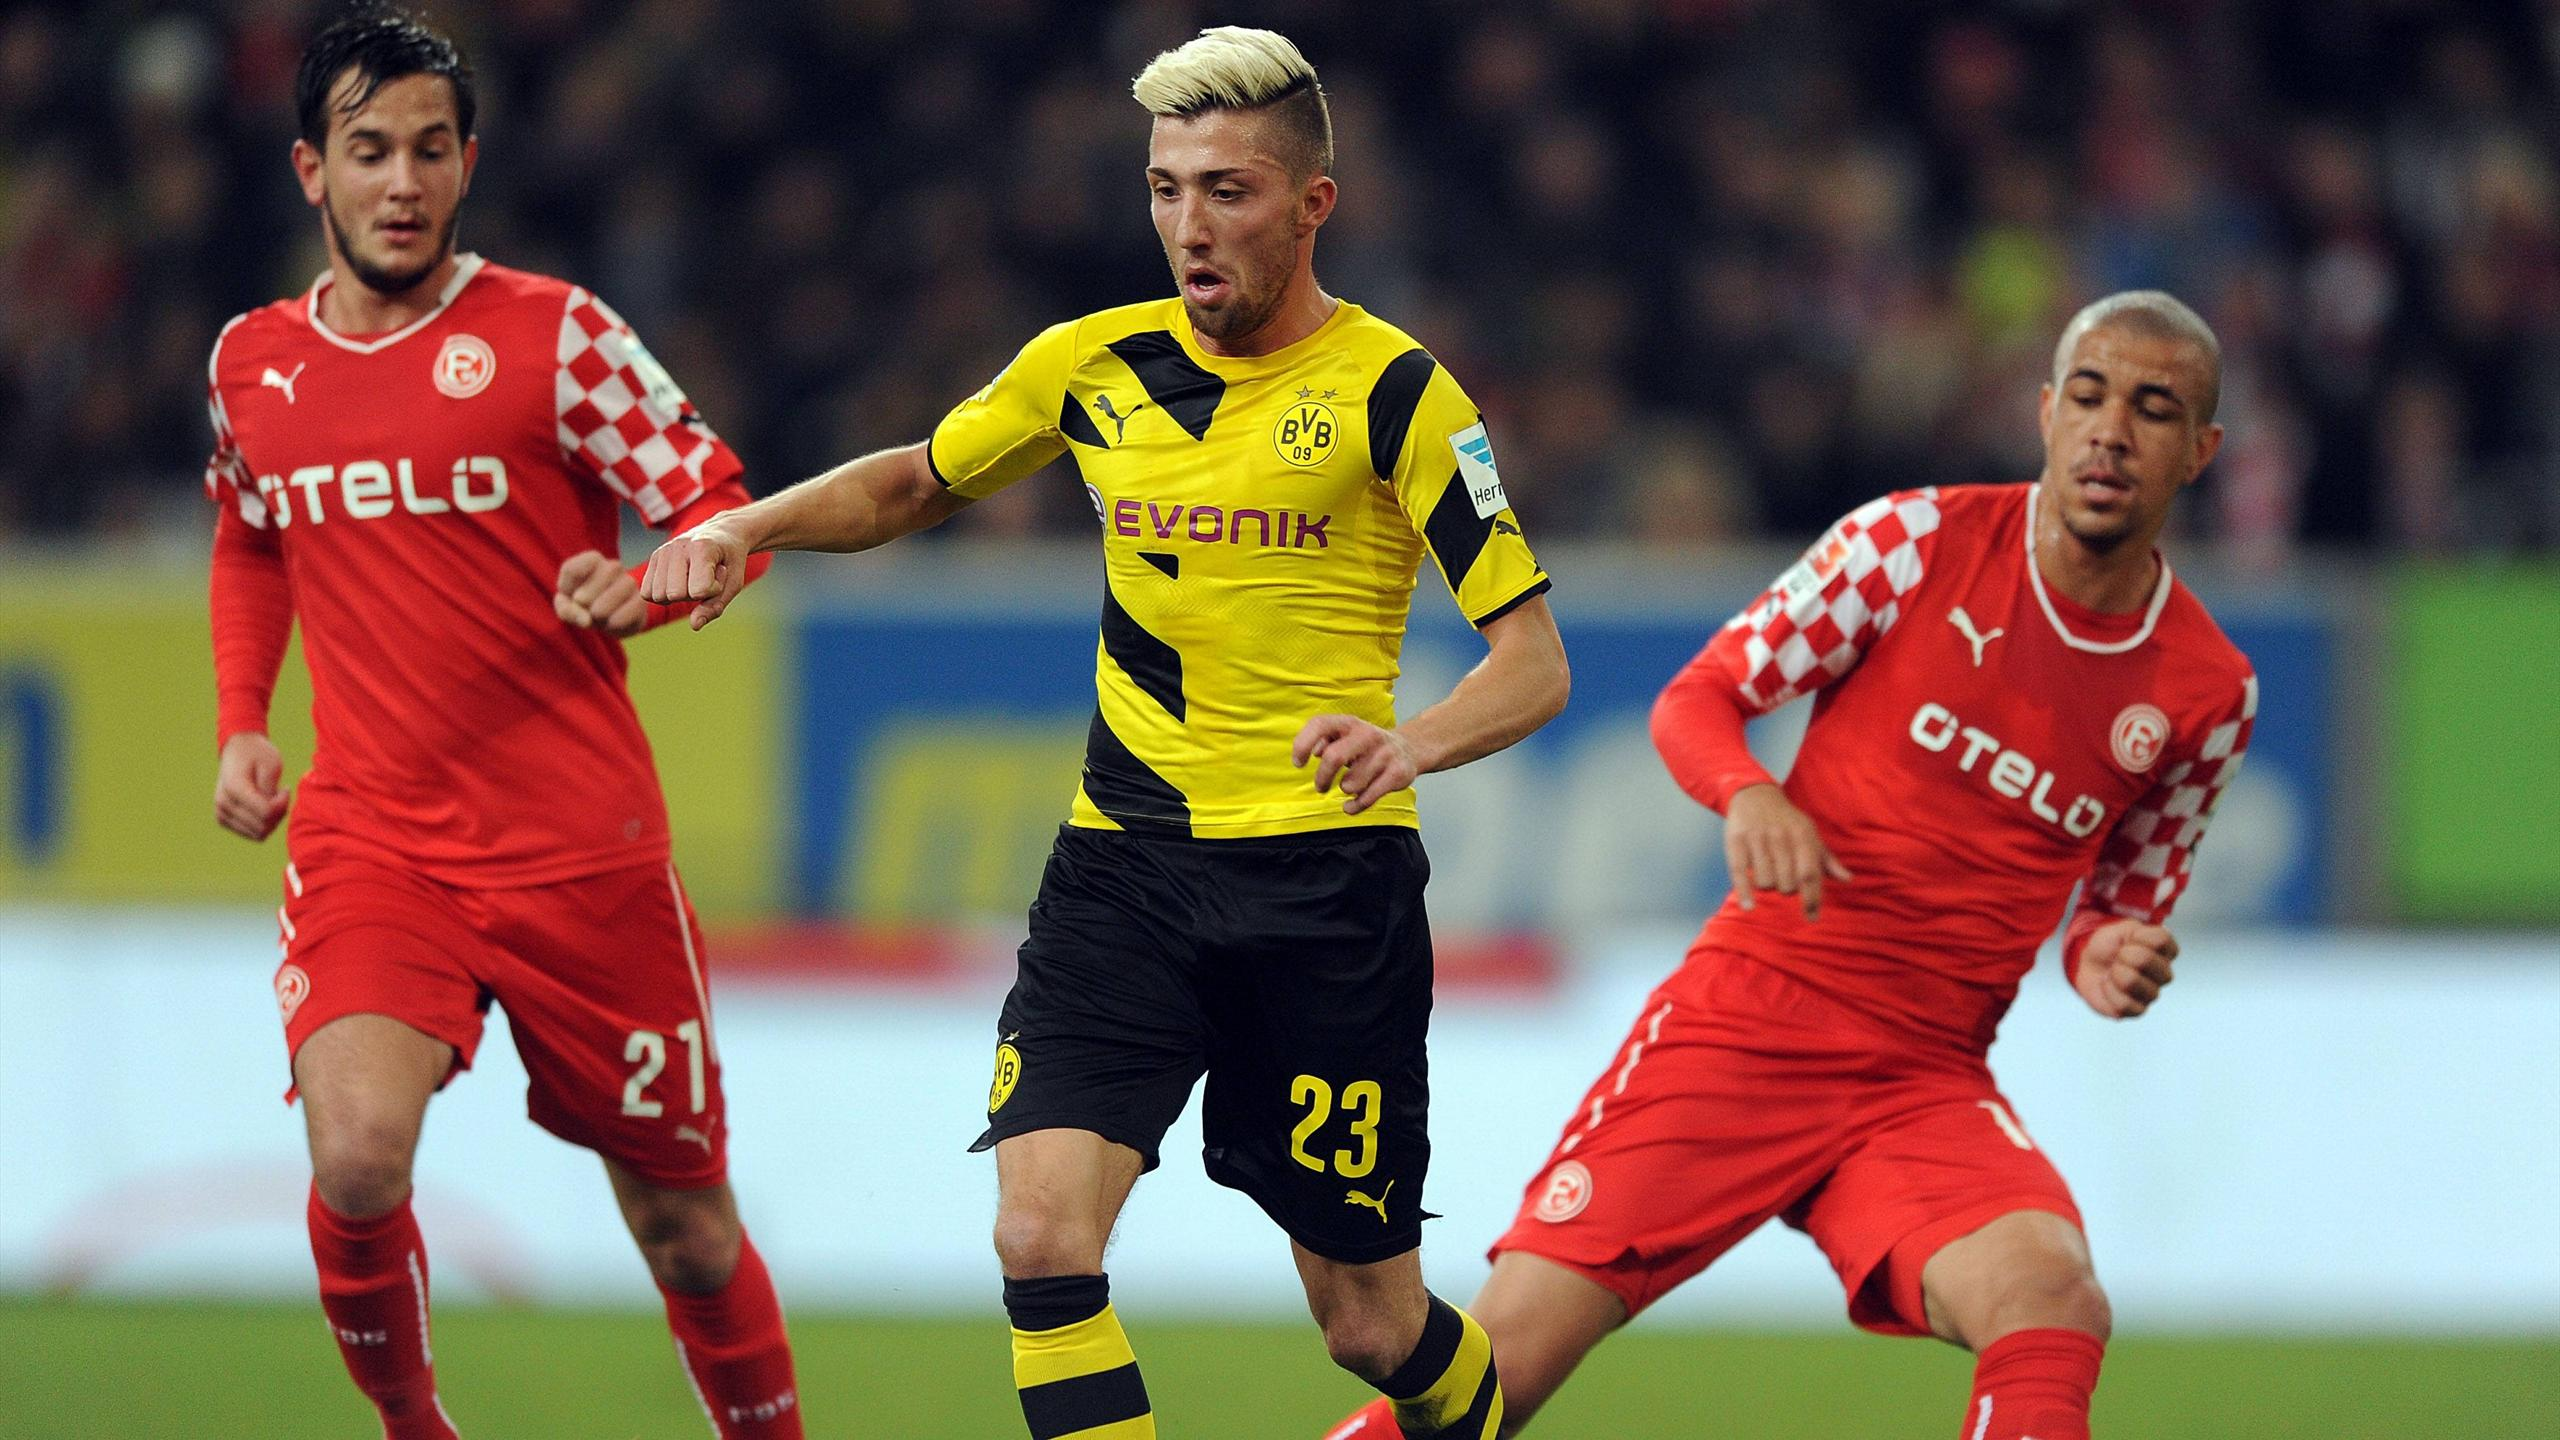 Video: Fortuna Dusseldorf vs Borussia Dortmund